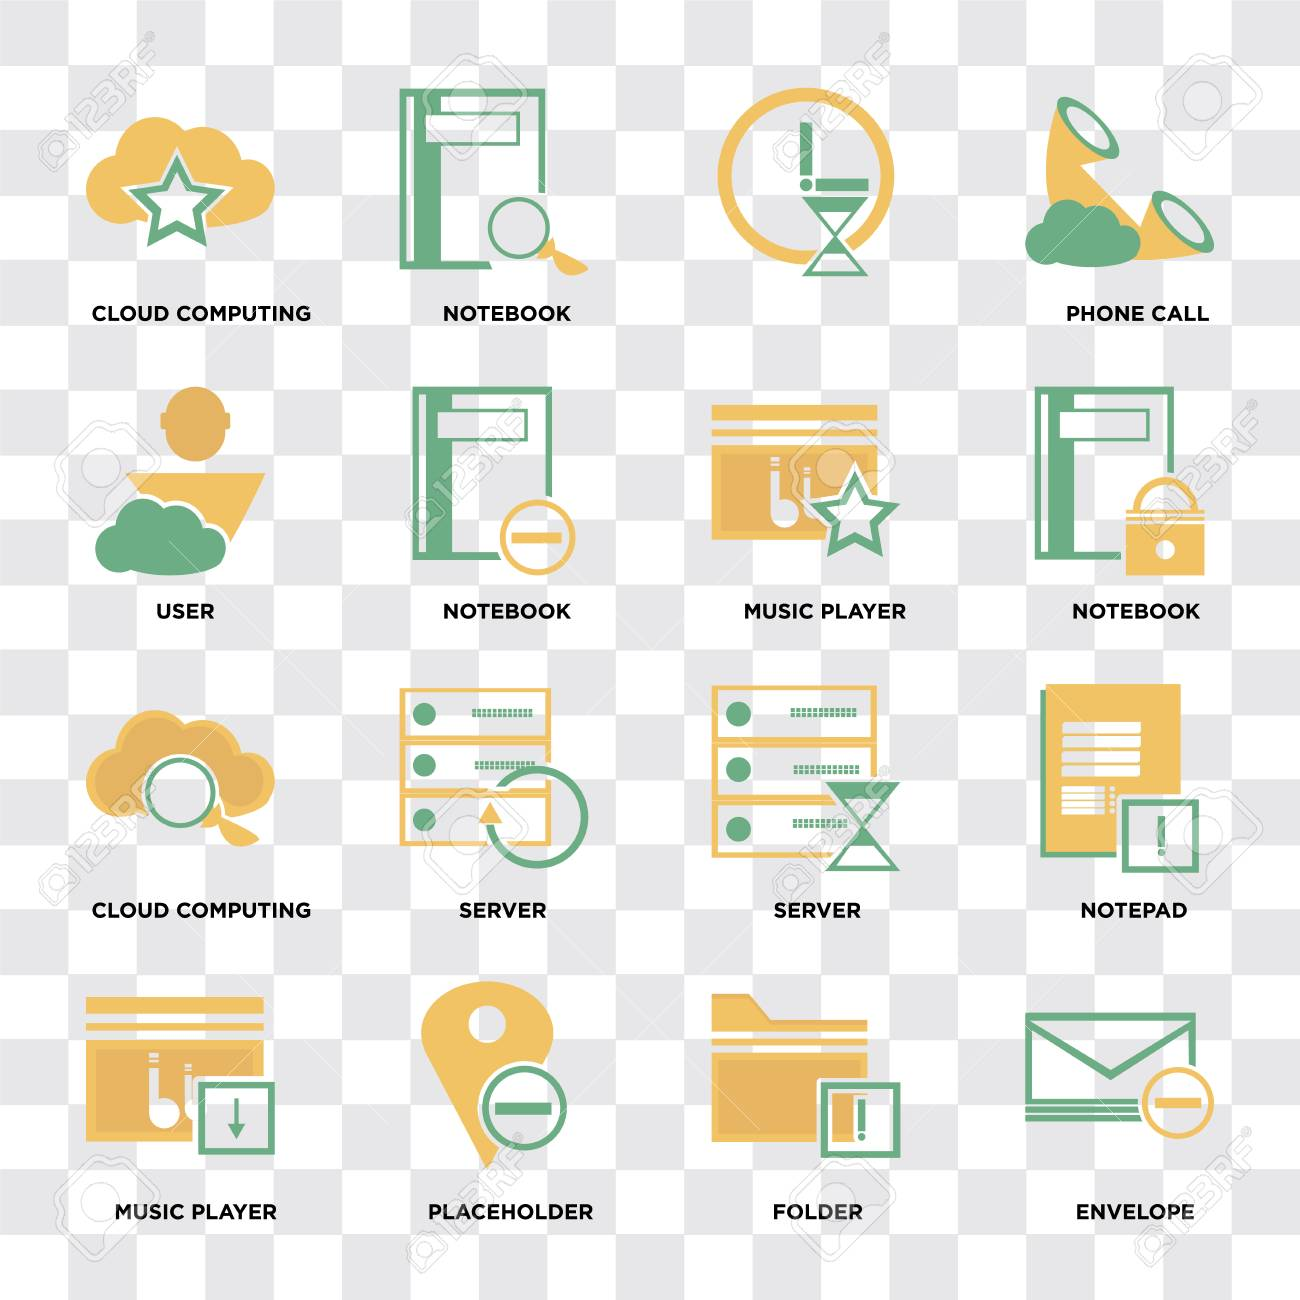 Set Of 16 icons such as Envelope, Folder, Placeholder, Music